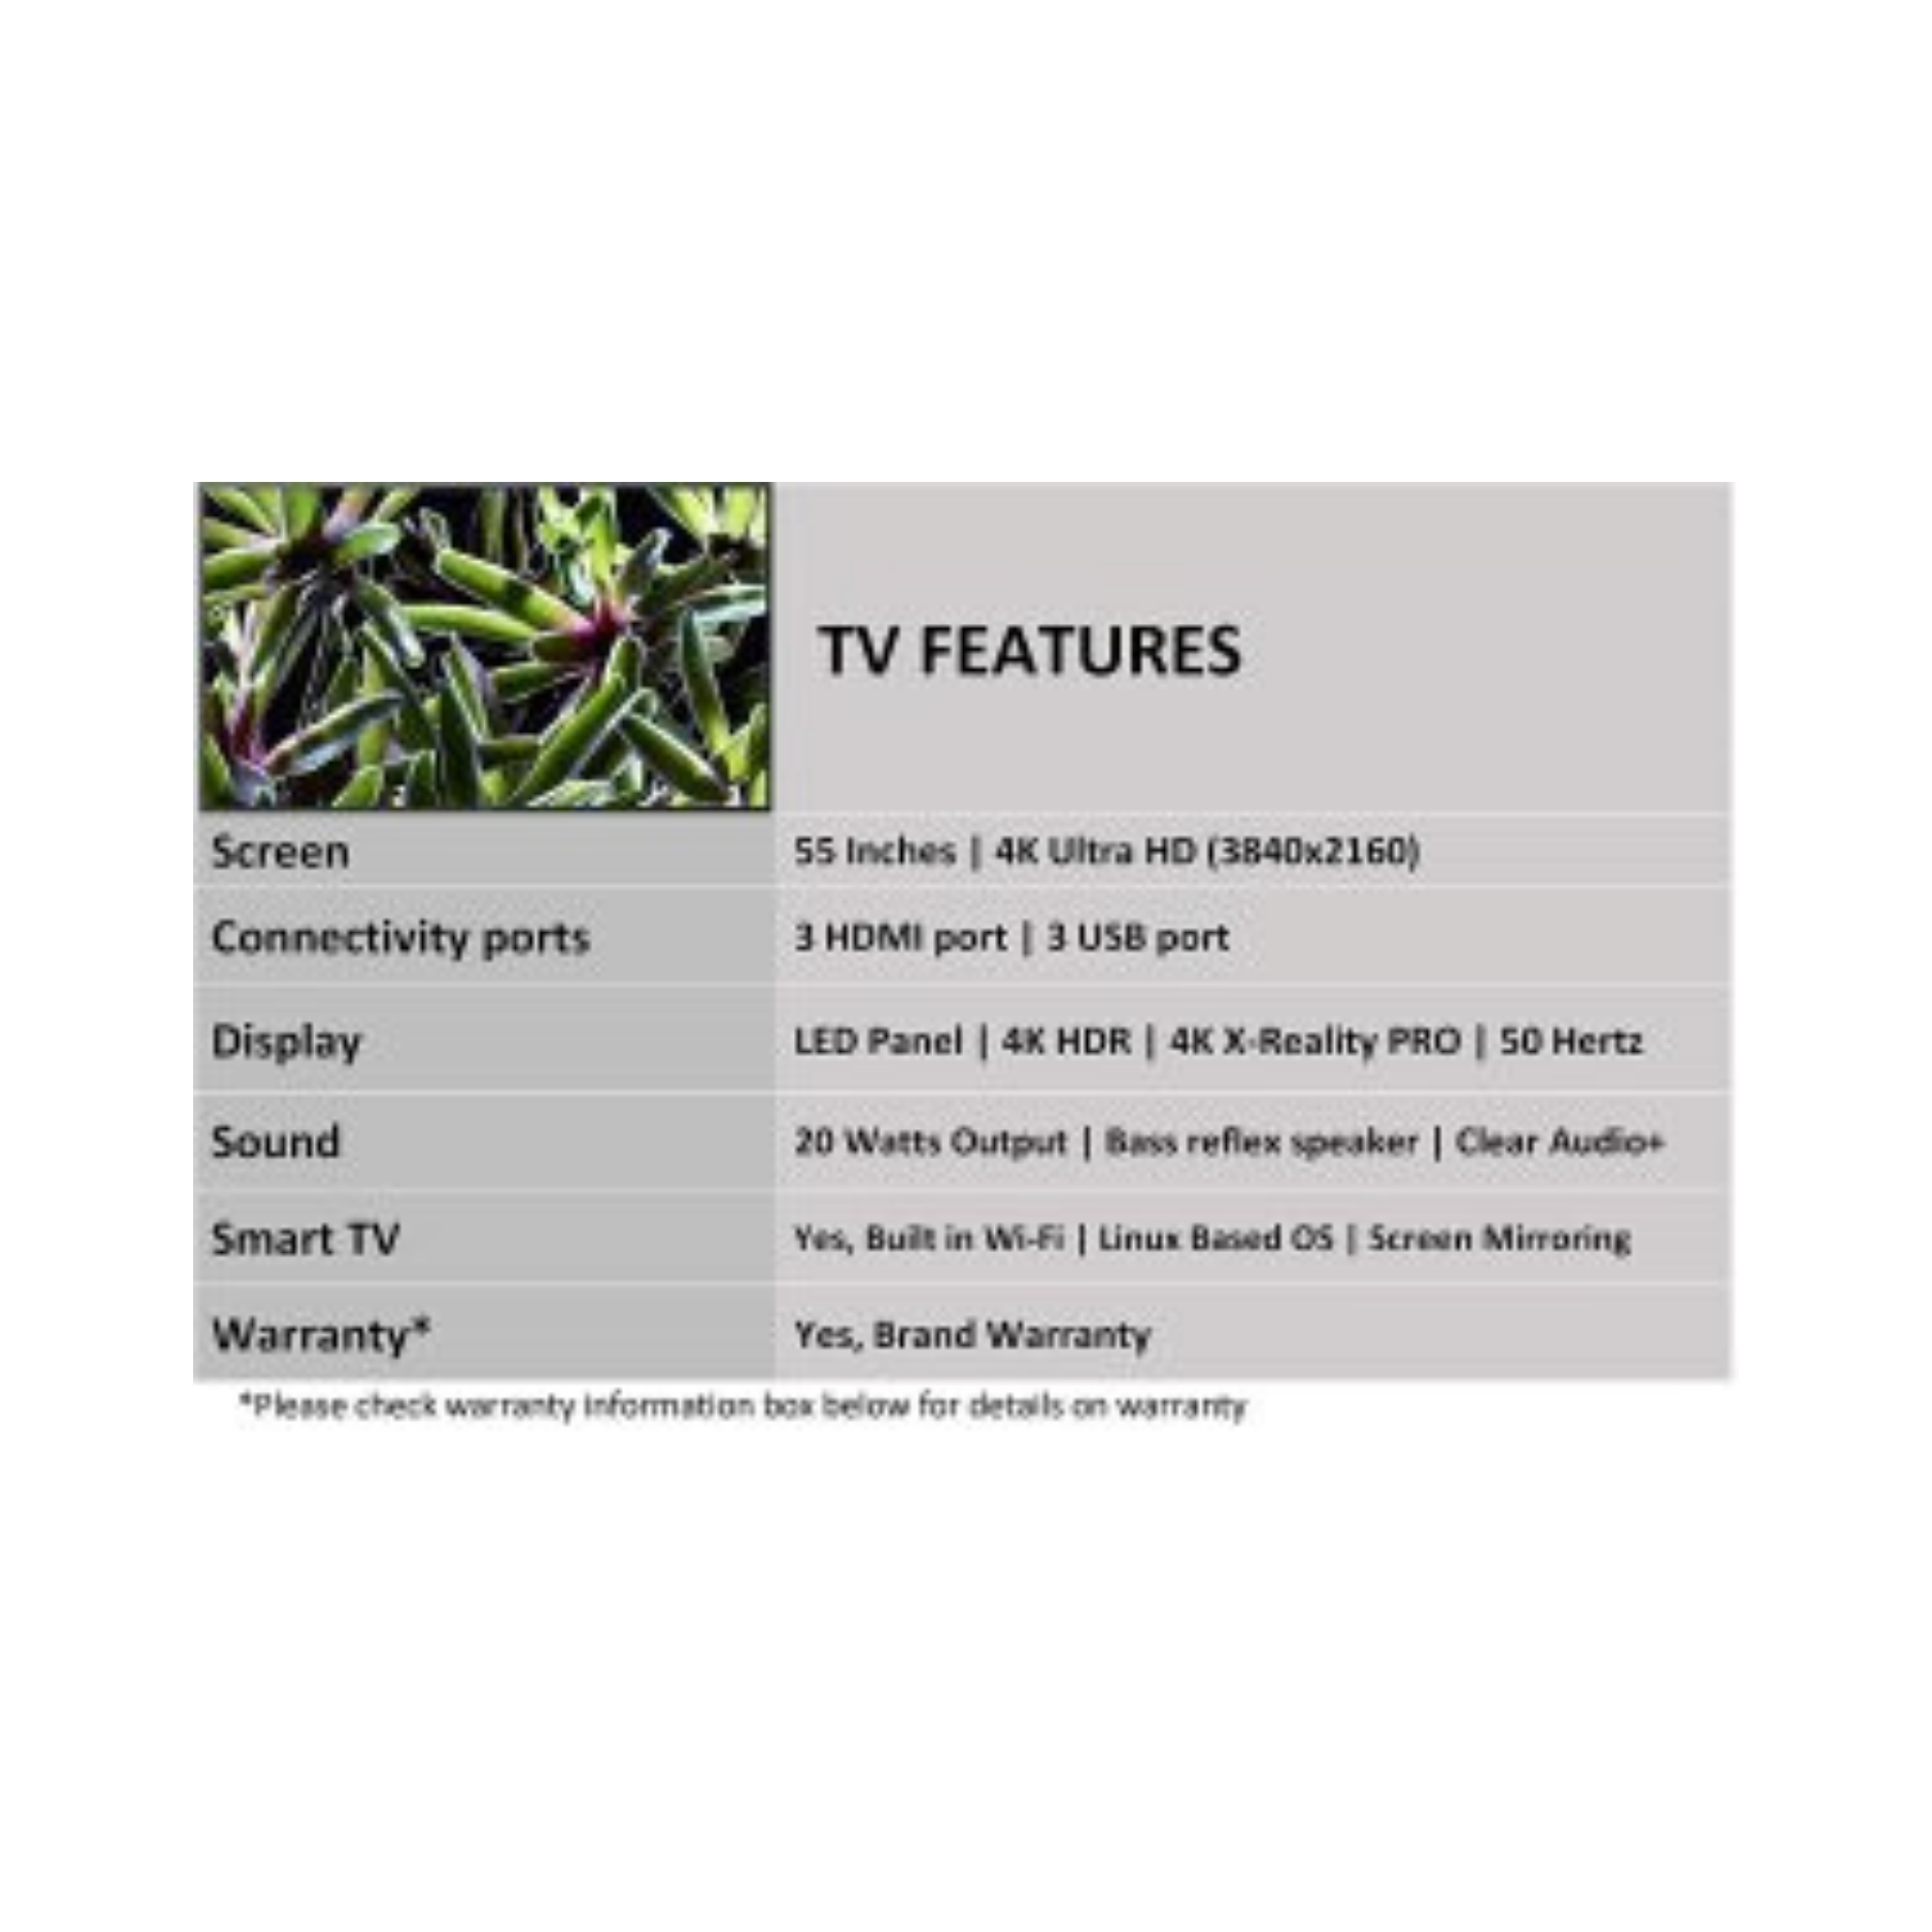 Sony Bravia 138 cm (55 inches) 4K Ultra HD Smart LED TV KD-55X7002G Black Sony Bravia 4K